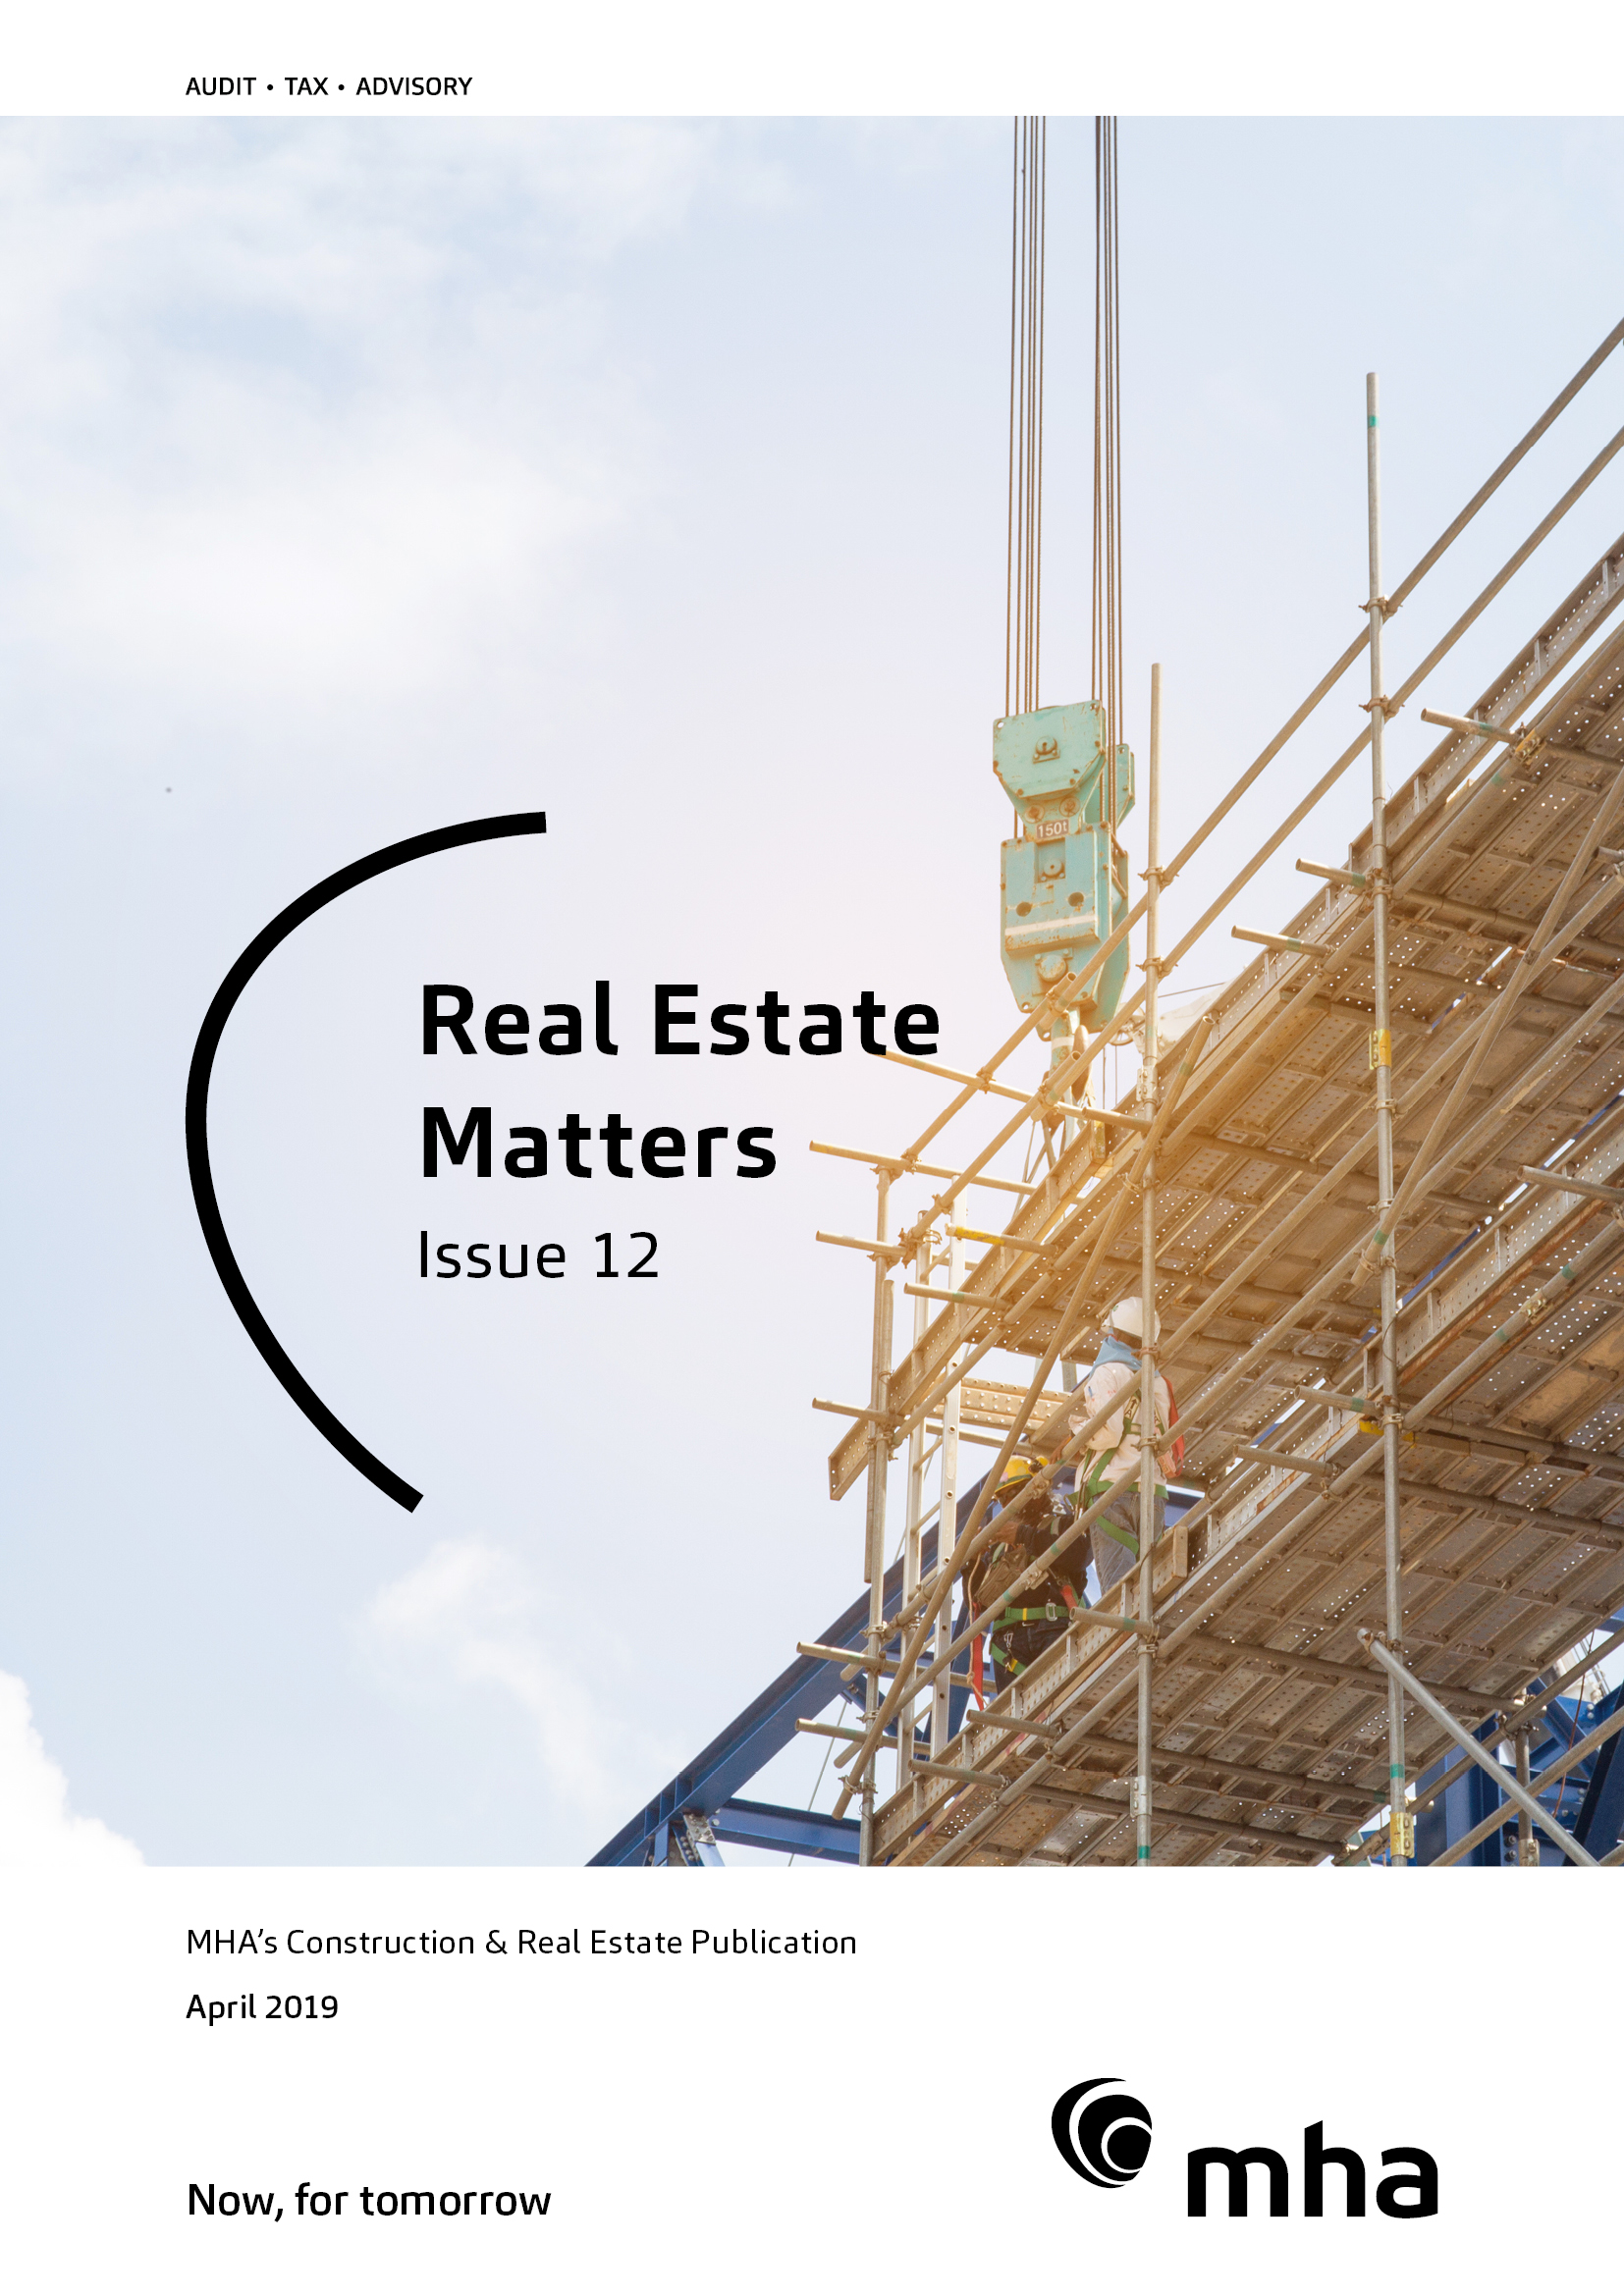 Real Estate Matters Issue 12